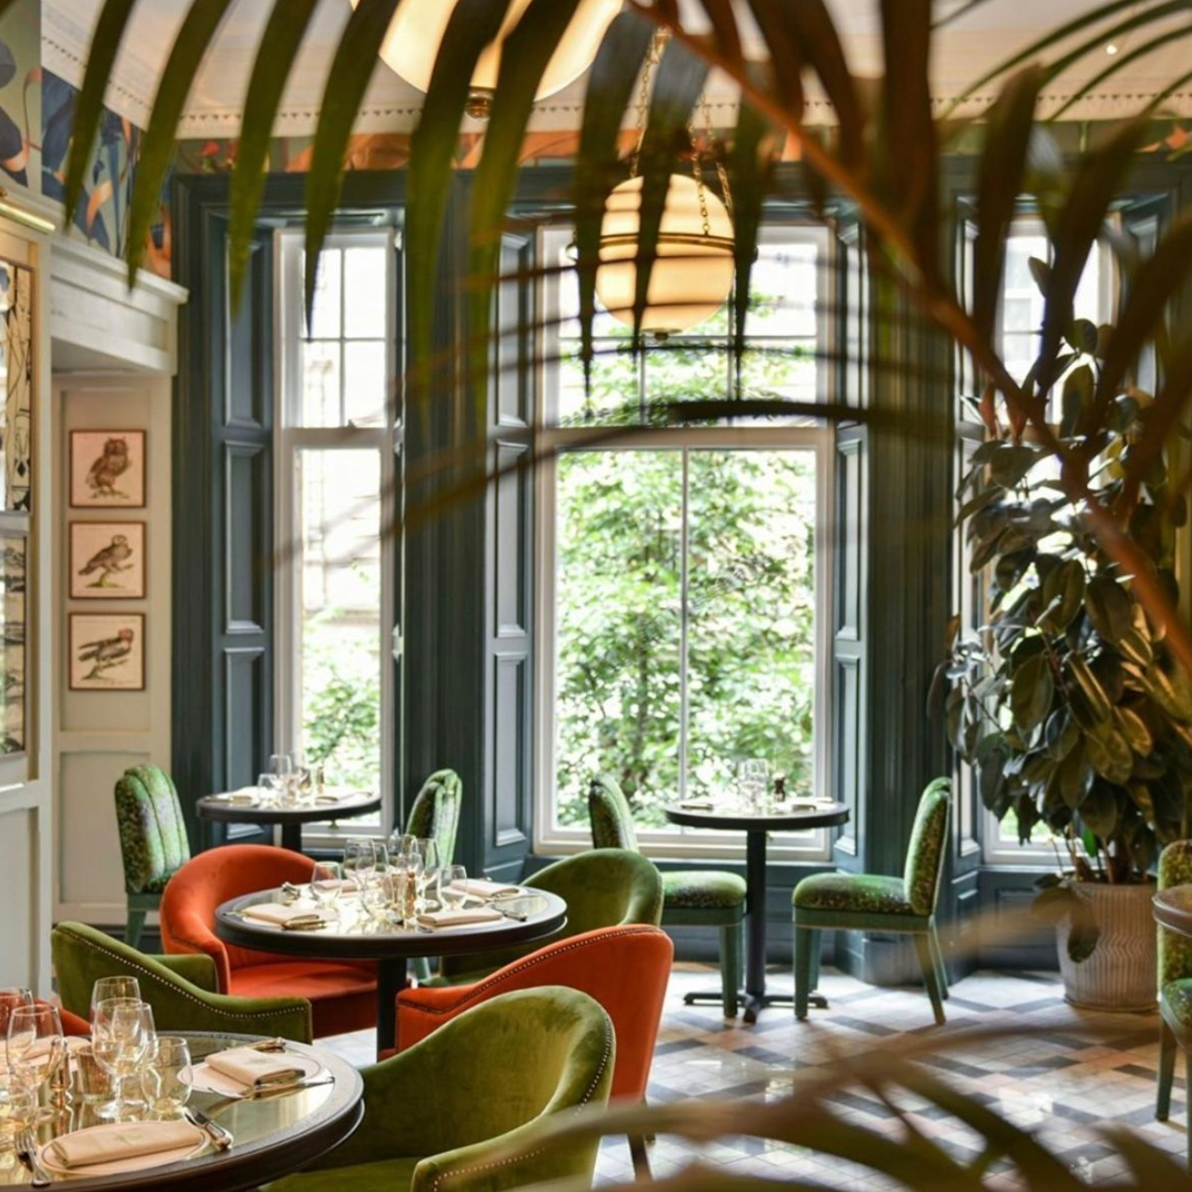 most_instagrammable_restaurants_in_glasgow_the_ivy